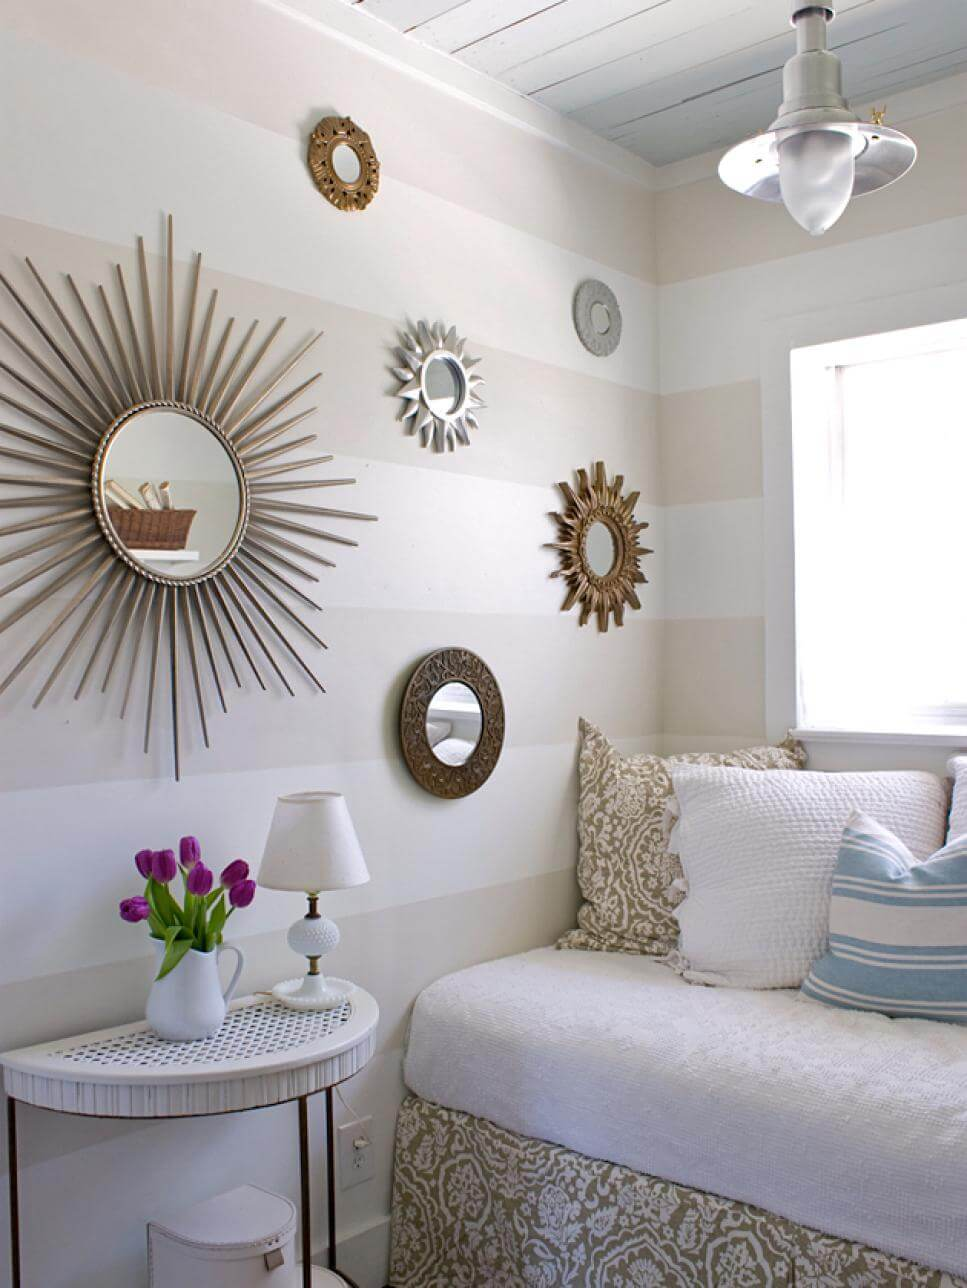 Mirrors of Suns and Circles on Striped Wall